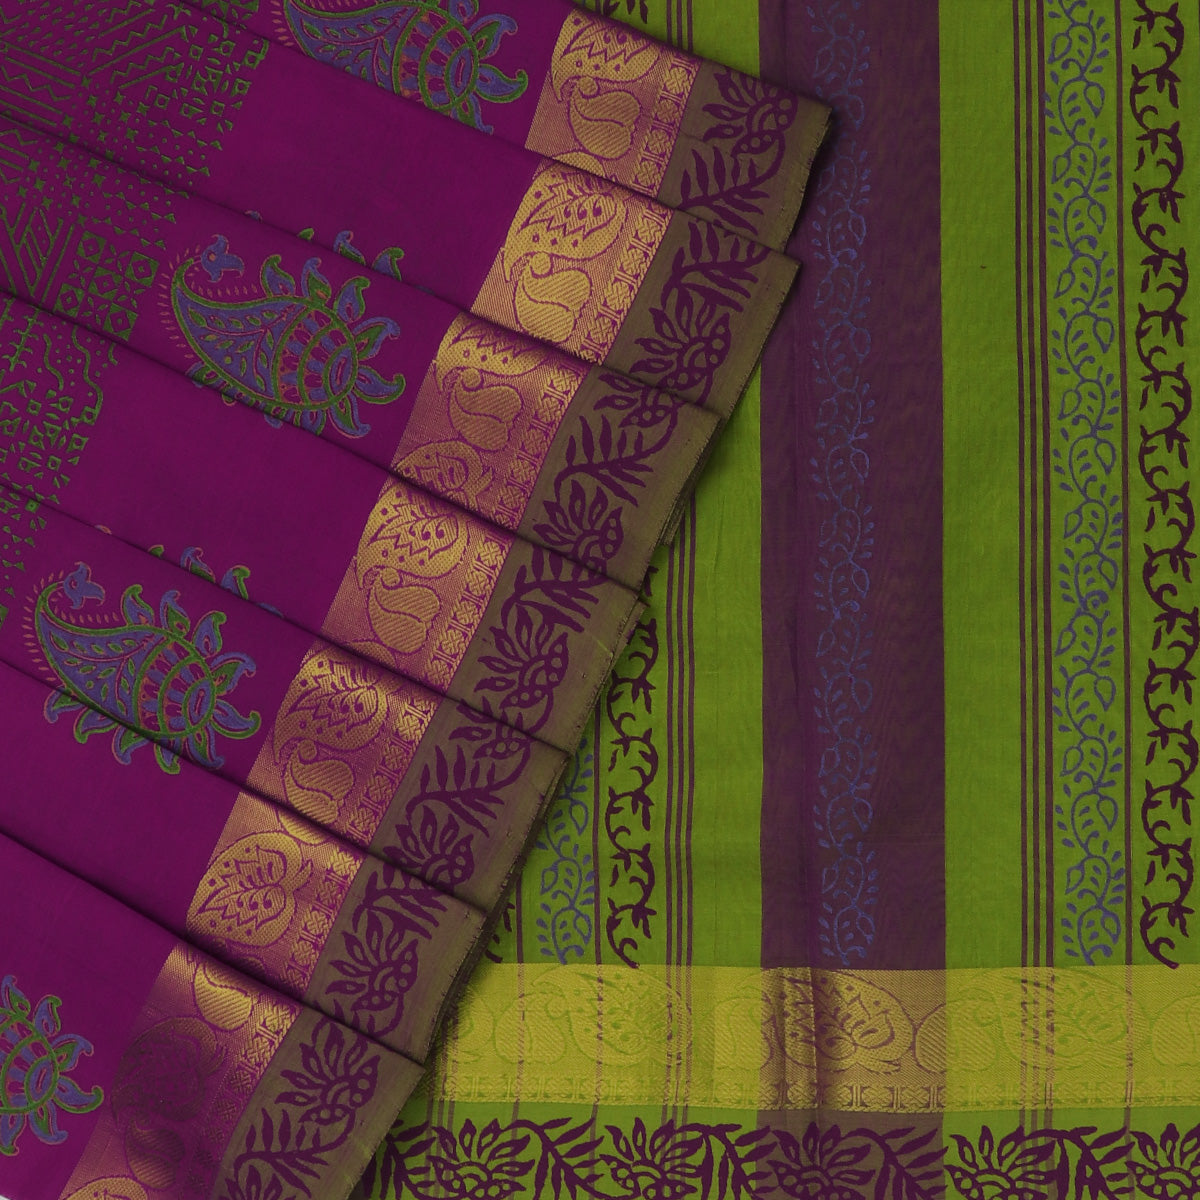 Printed Silk Cotton Saree dark Pink and Mehandi Green with Simple Zari border